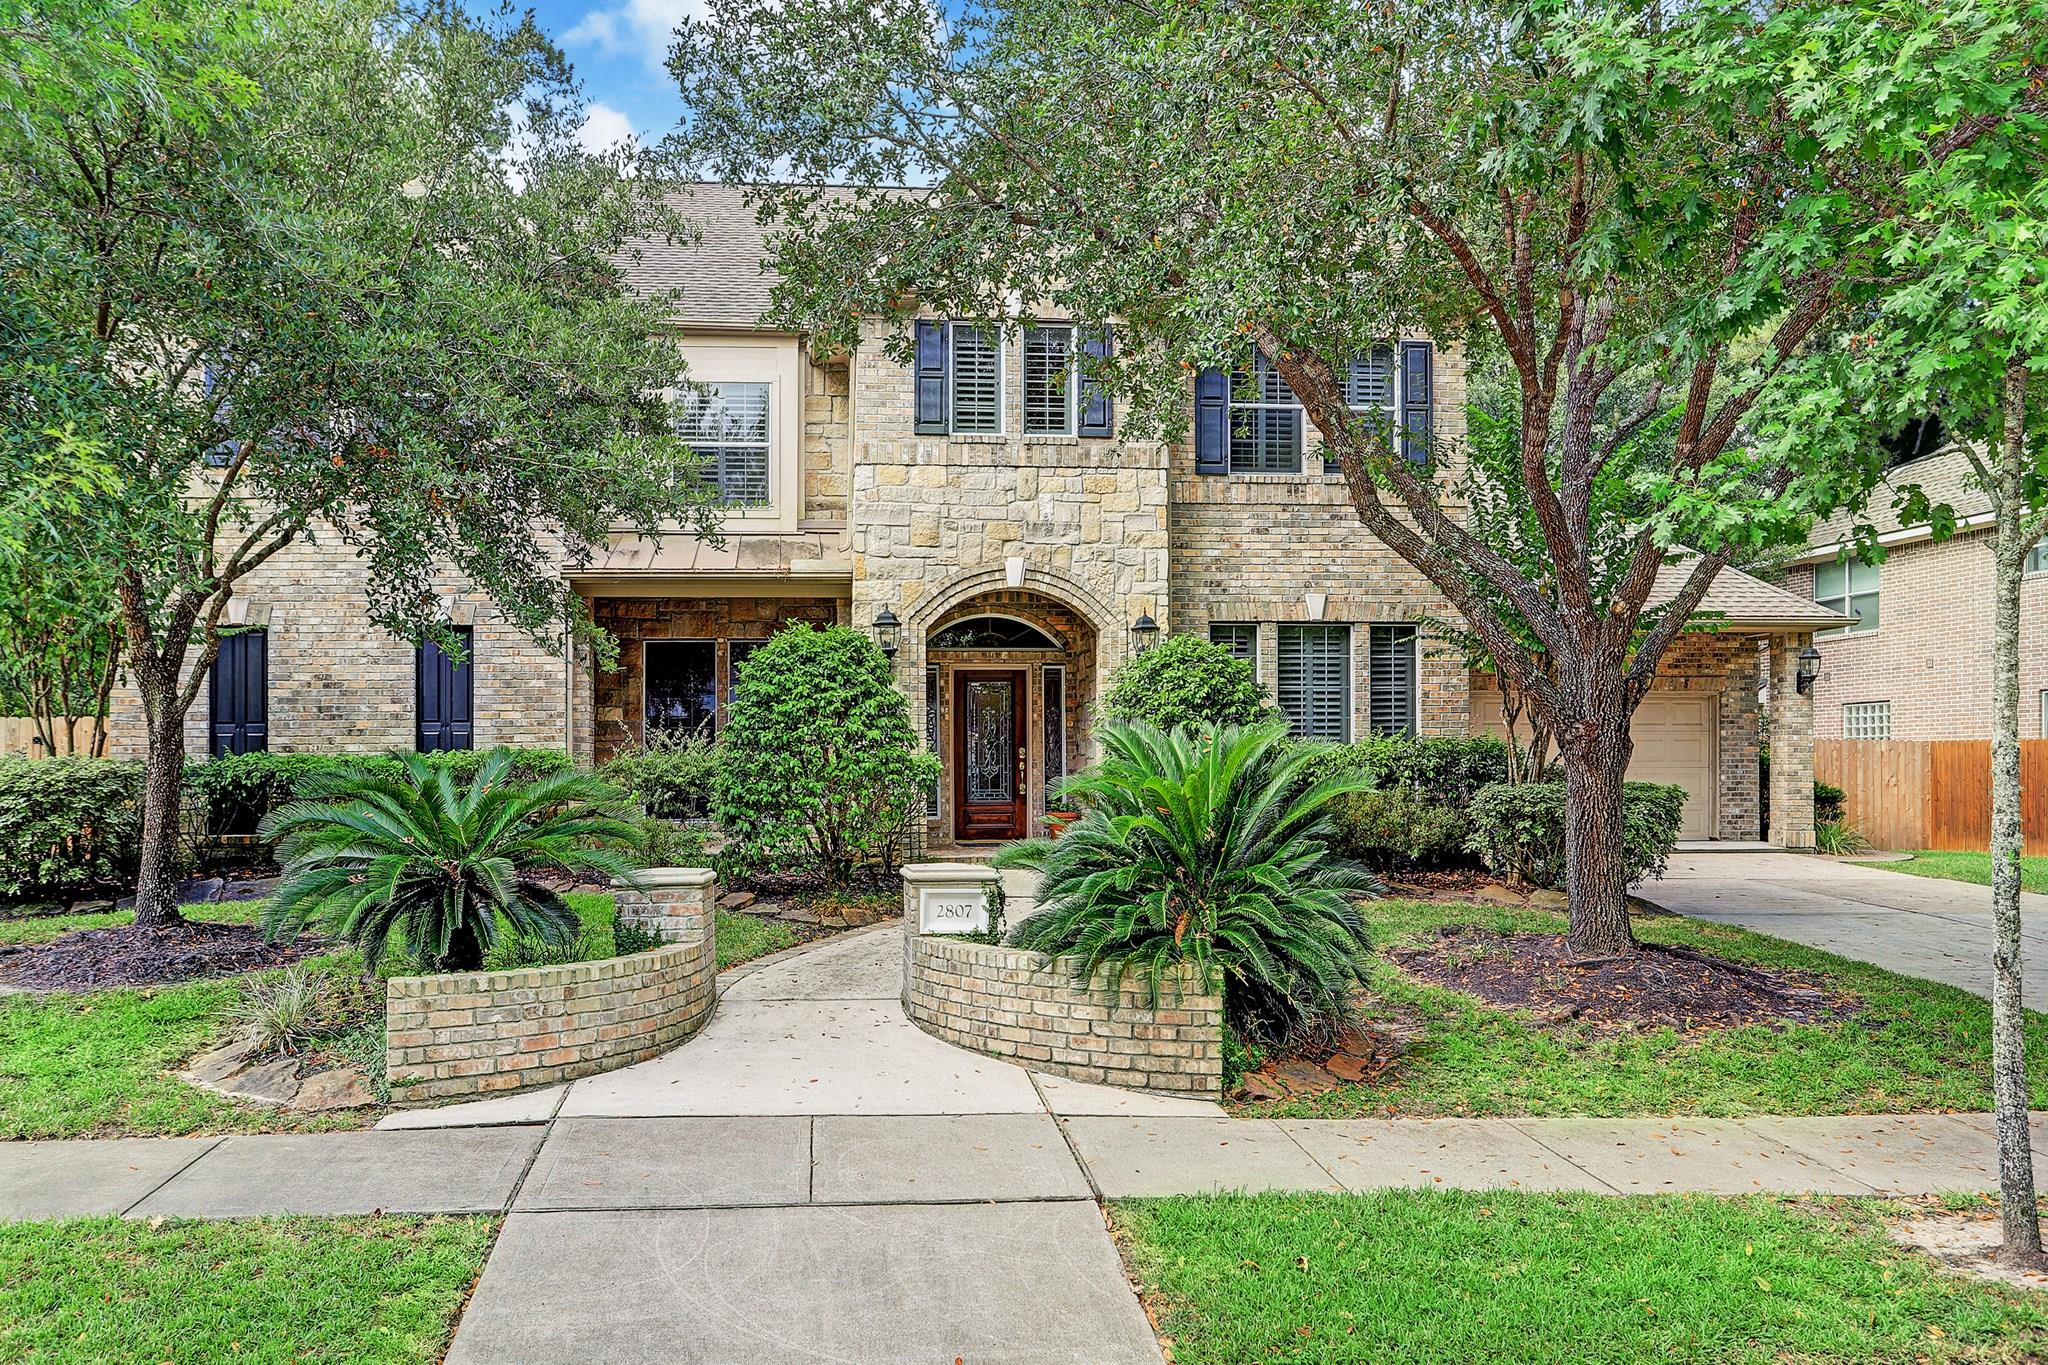 2807 Hazy Hillside Court Property Photo - Kingwood, TX real estate listing